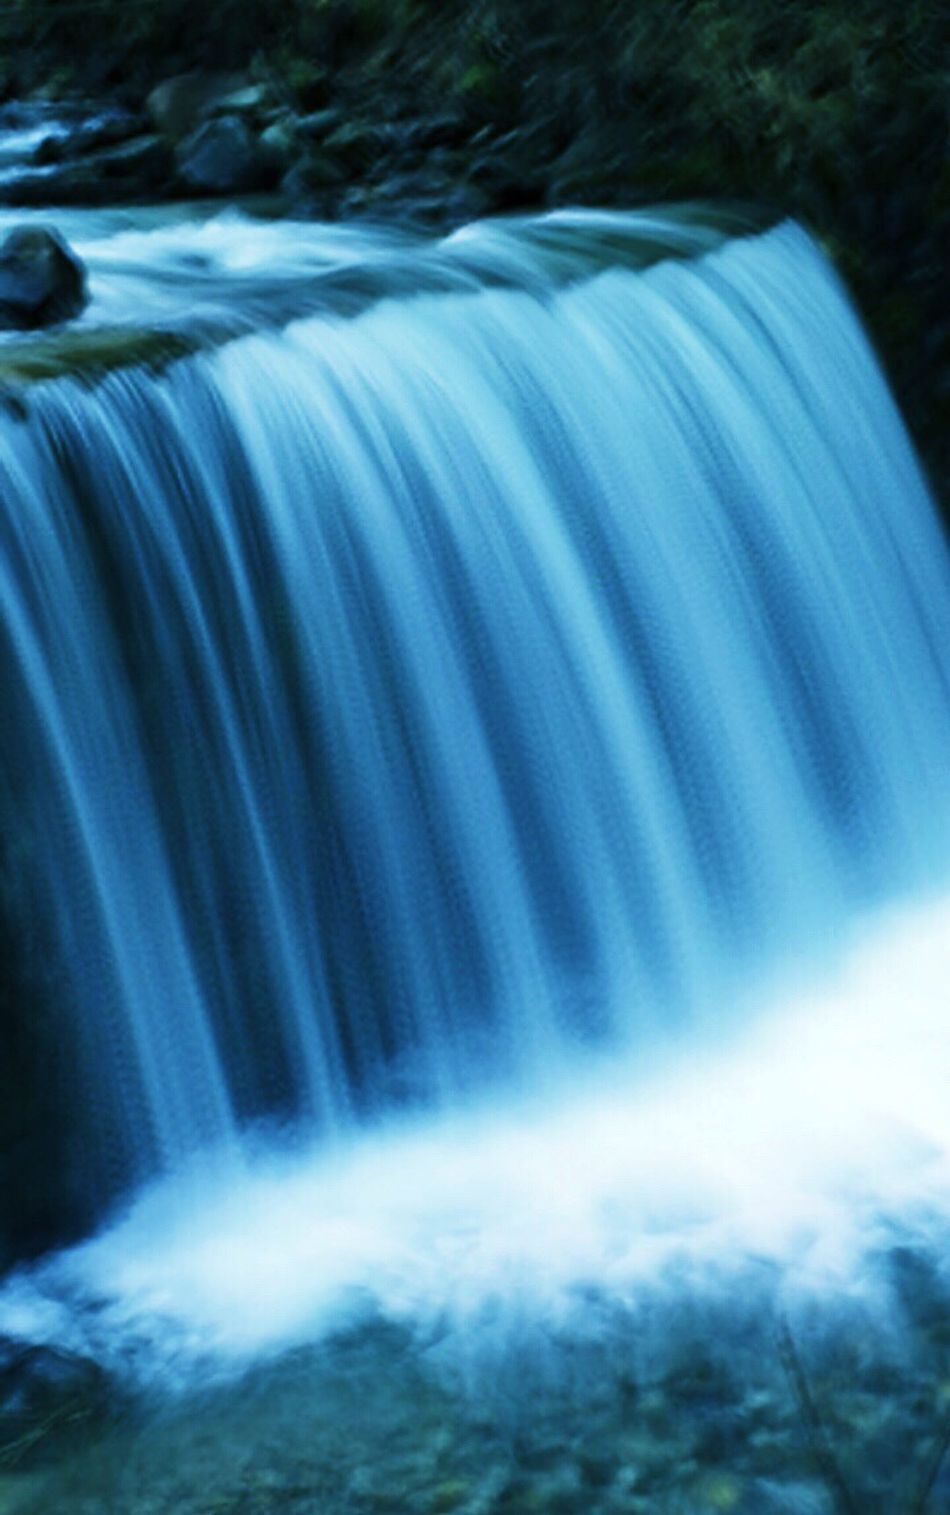 Water Water_collection Waterfall Slow Shutter Blue Lusen  Tyrol Italy